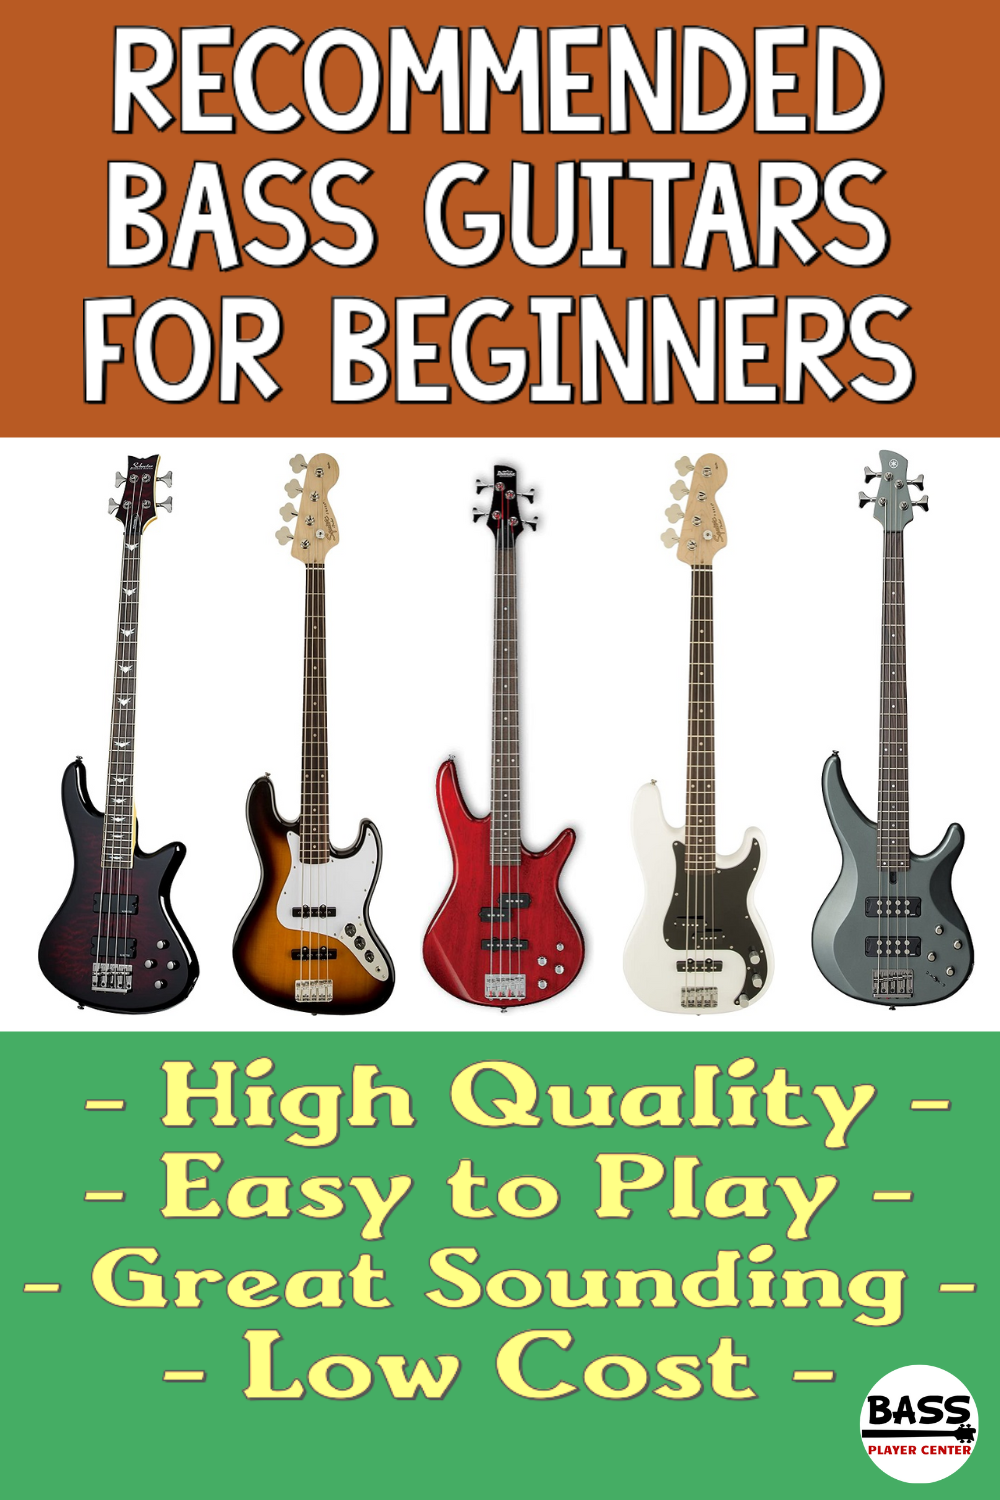 Recommended Best Bass Guitars for Beginners